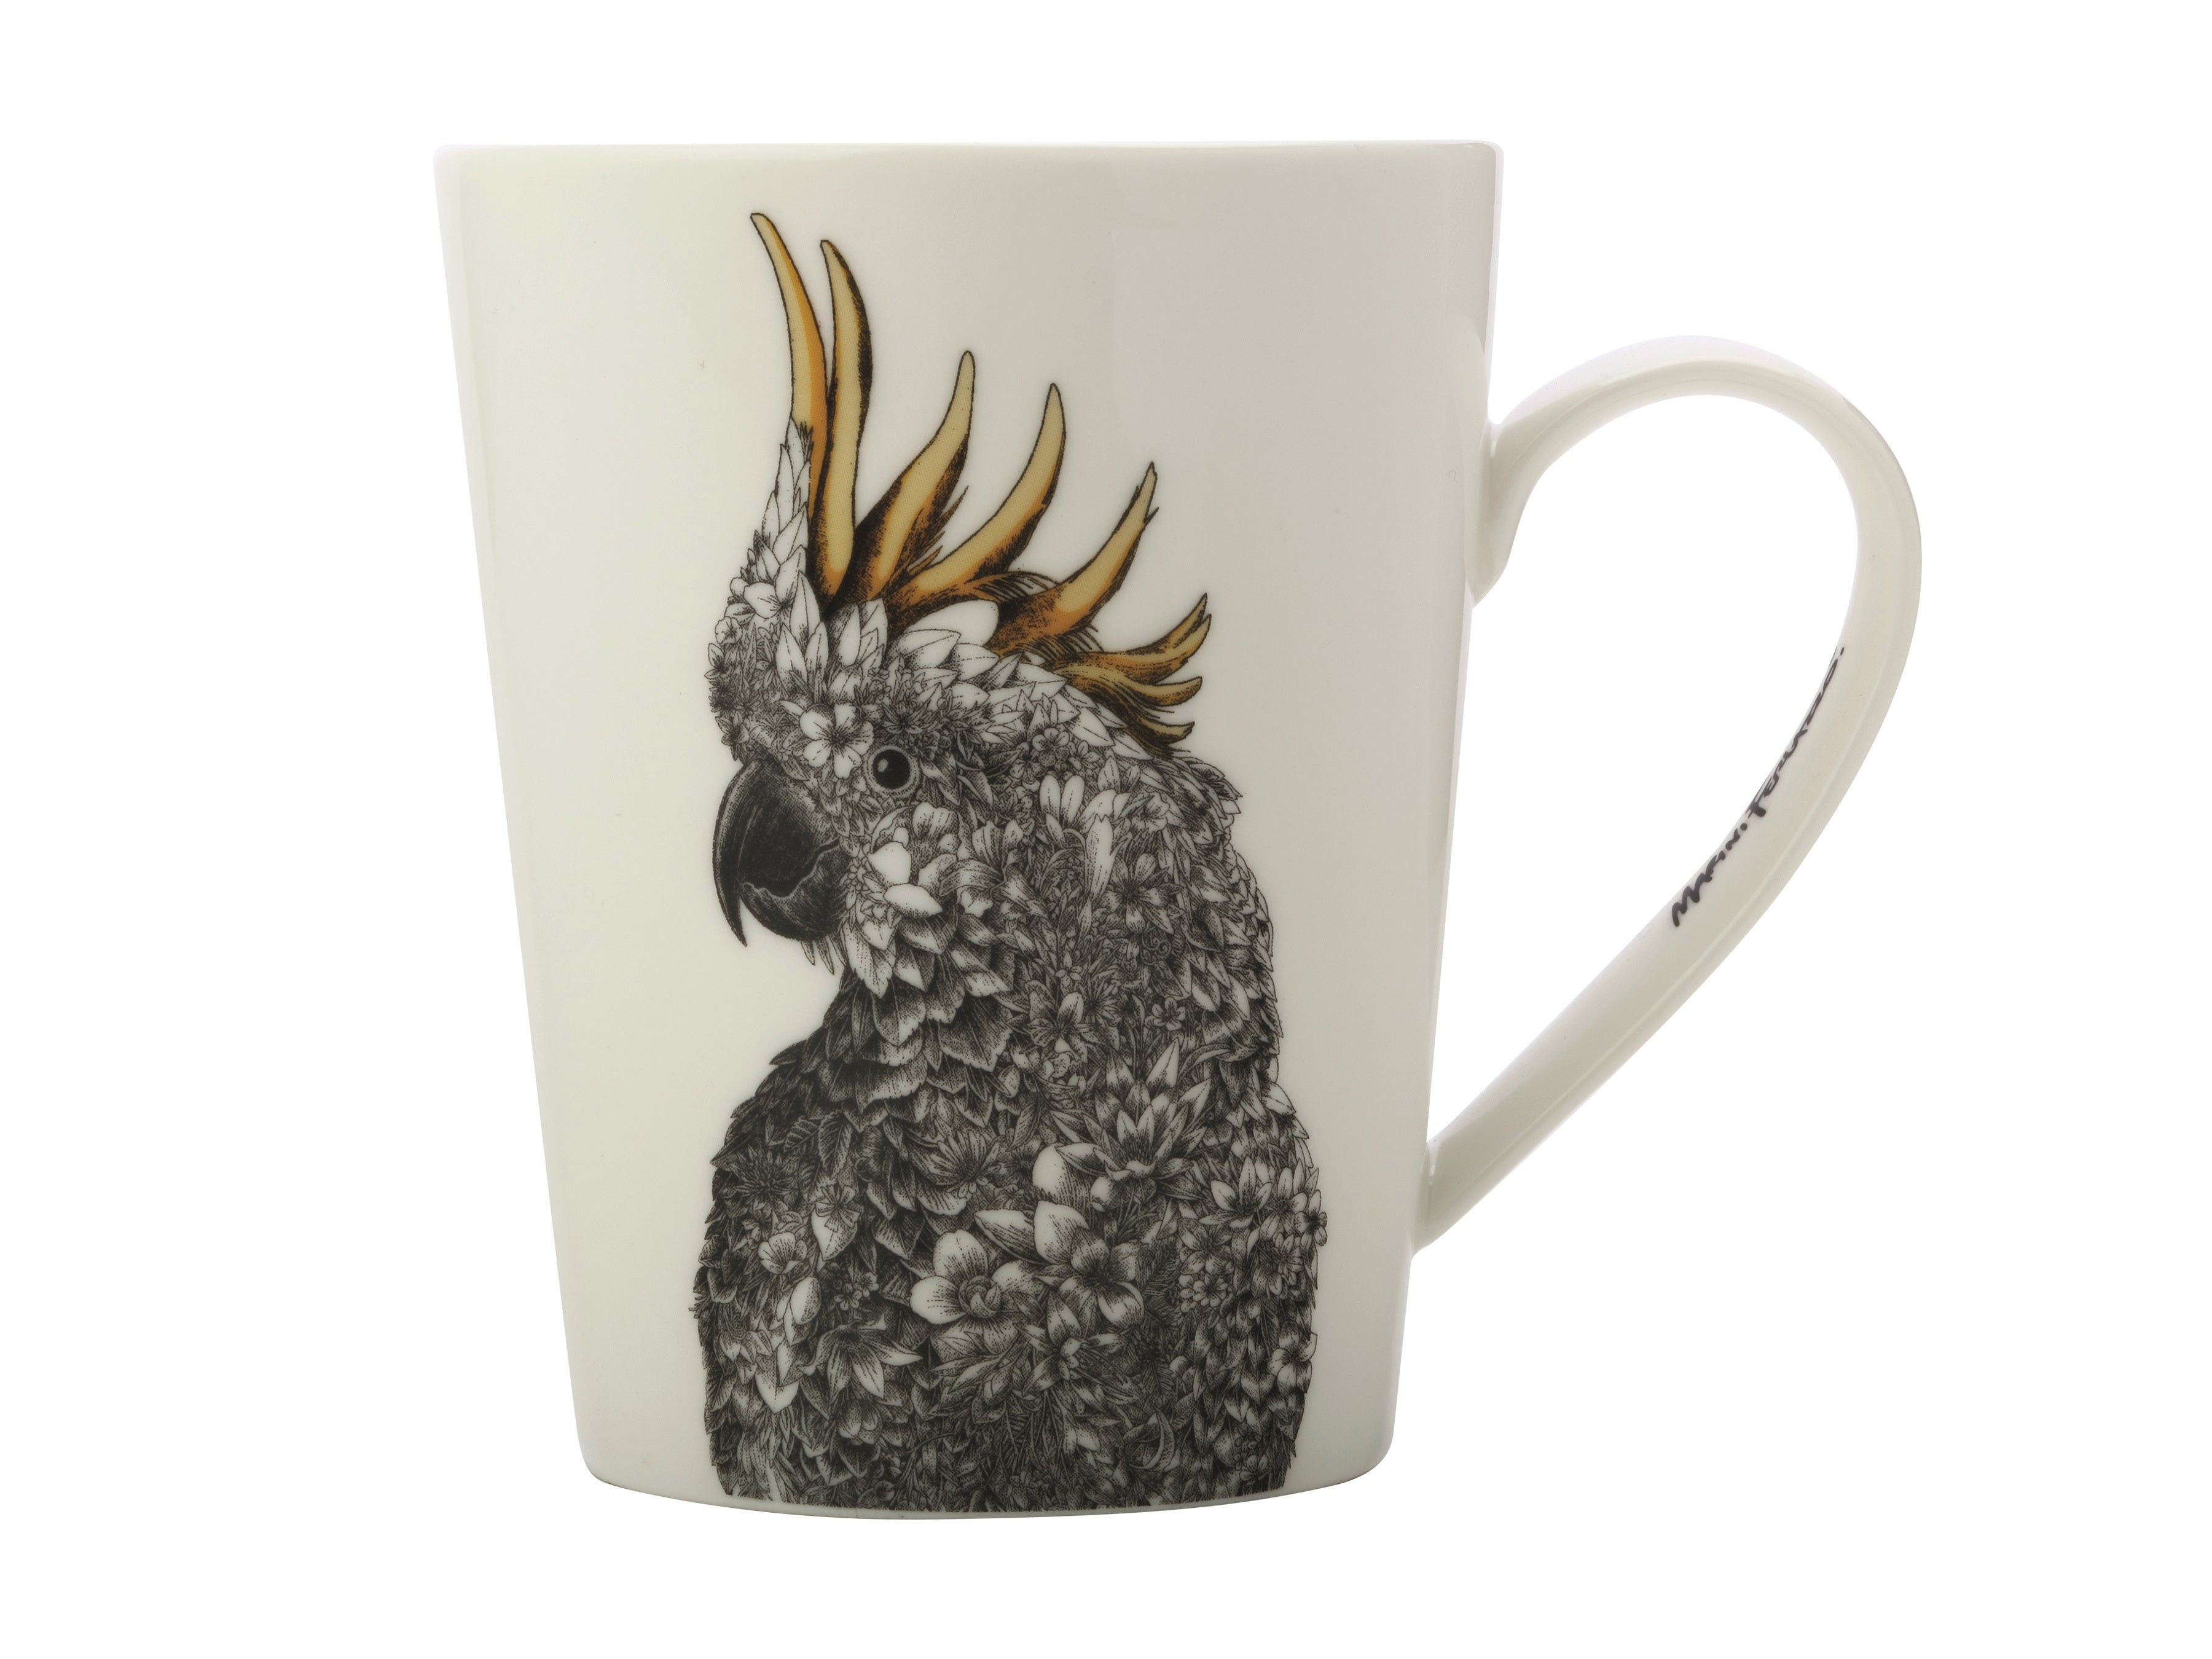 MW Marini Ferlazzo Birds Cockatoo Mug, Bottle and Tea Towel Set